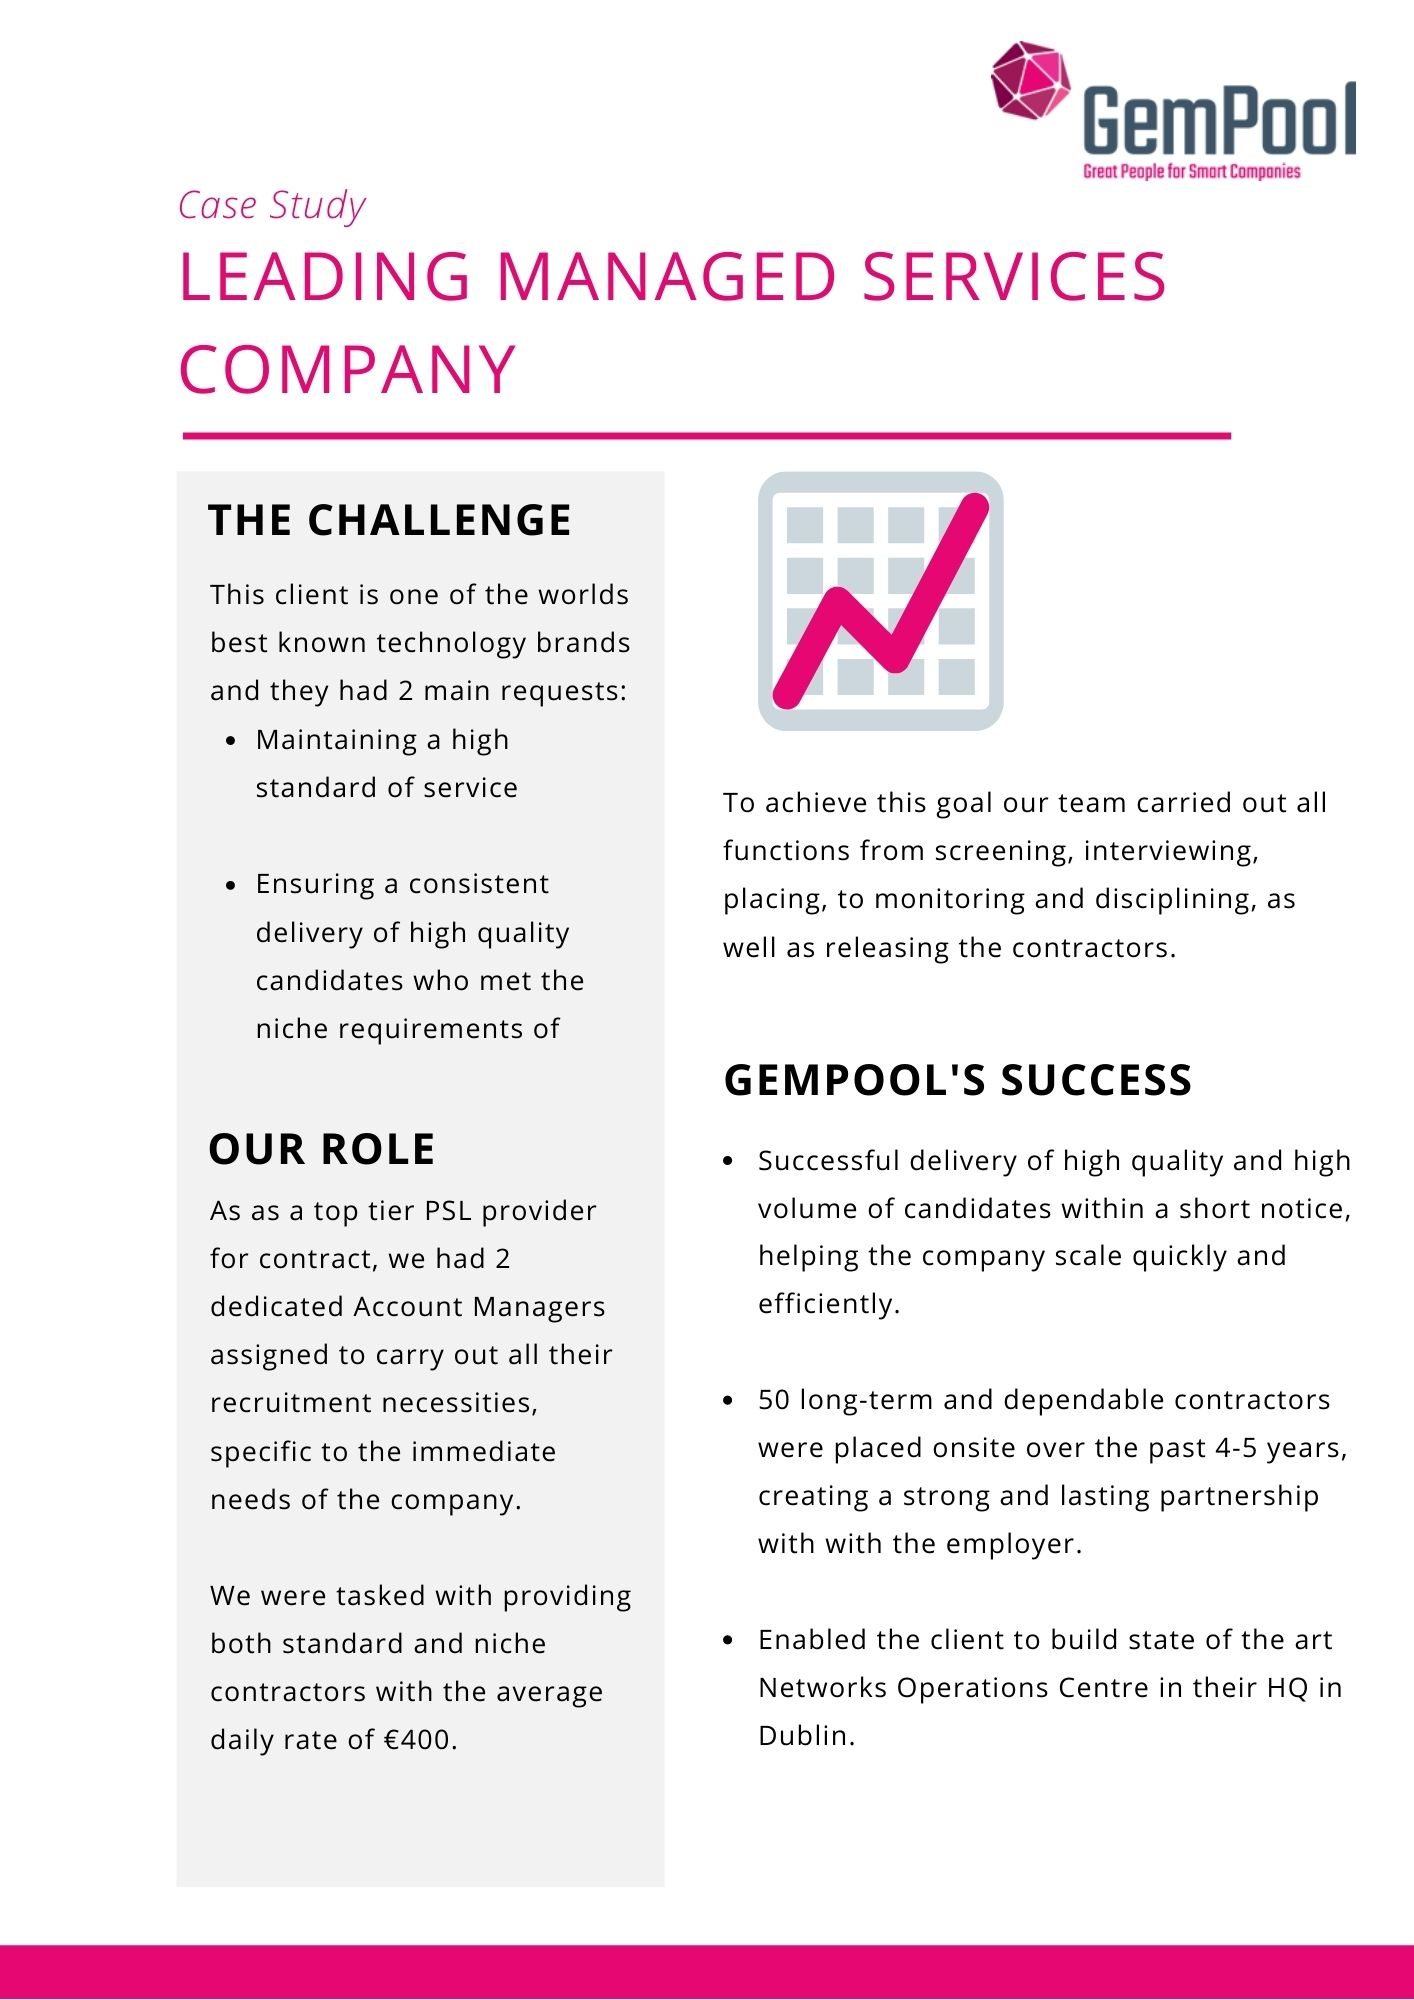 gempool recruitment service case study